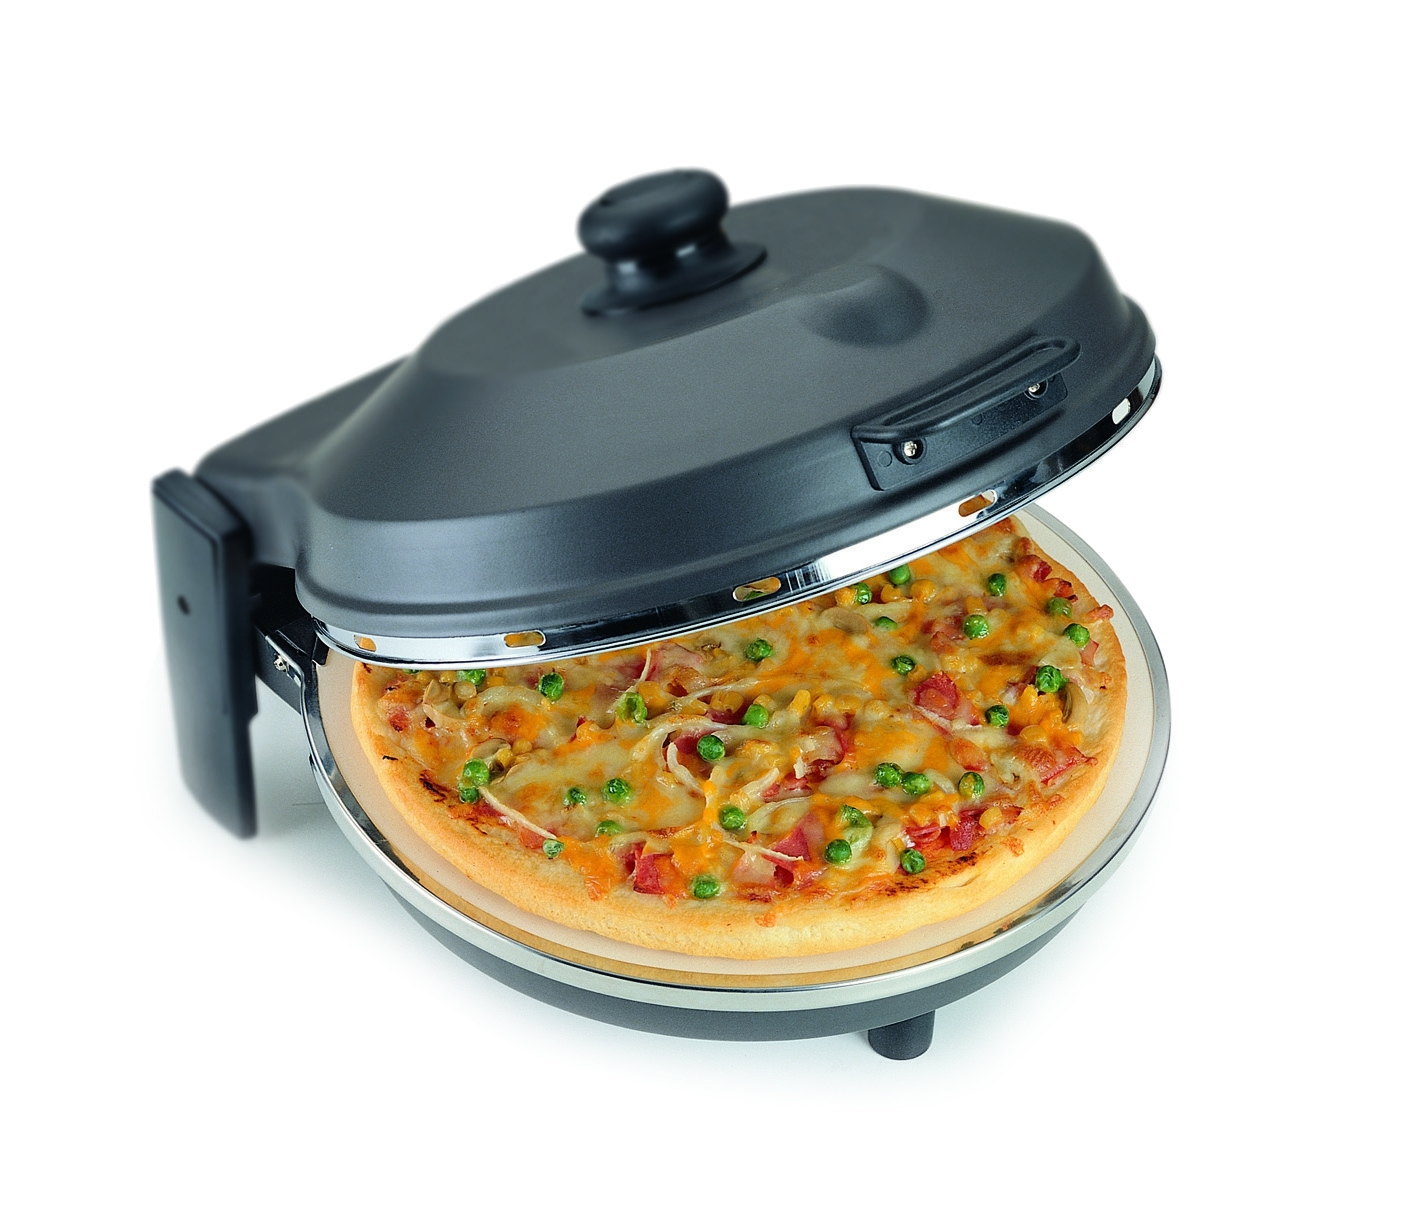 Home Use Electric Stone Bake Portable Pizza Oven Buy Pizza Oven With Adjustable Temperature Control Household Use Ceramic Stone Bake Electric Pizza Maker Italian Style Ceramic Stone Pizza Maker Oven At Home Product